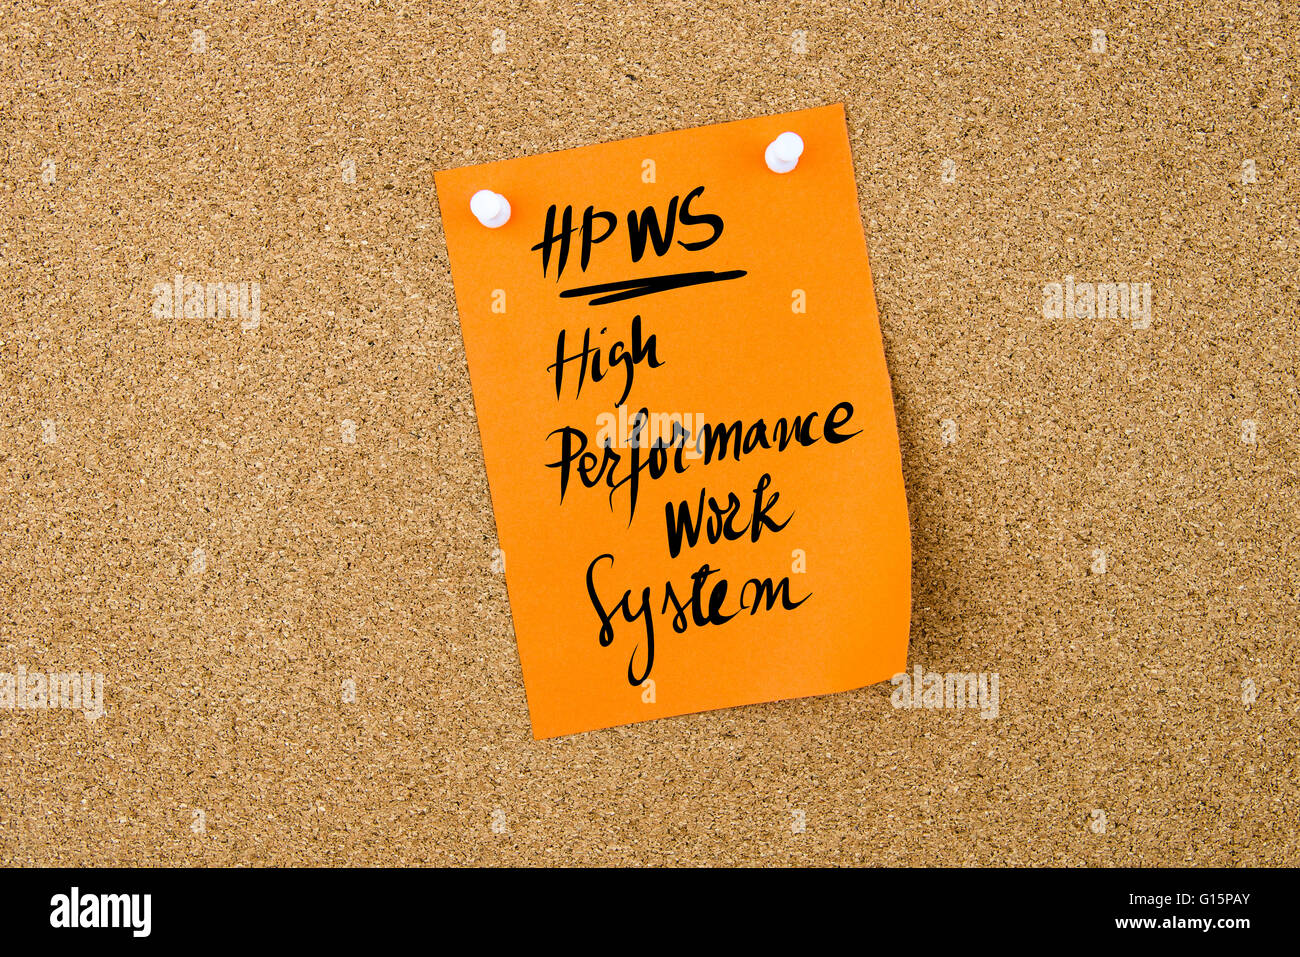 business acronym hpws high performance work system written on business acronym hpws high performance work system written on orange paper note pinned on cork board white thumbtack copy